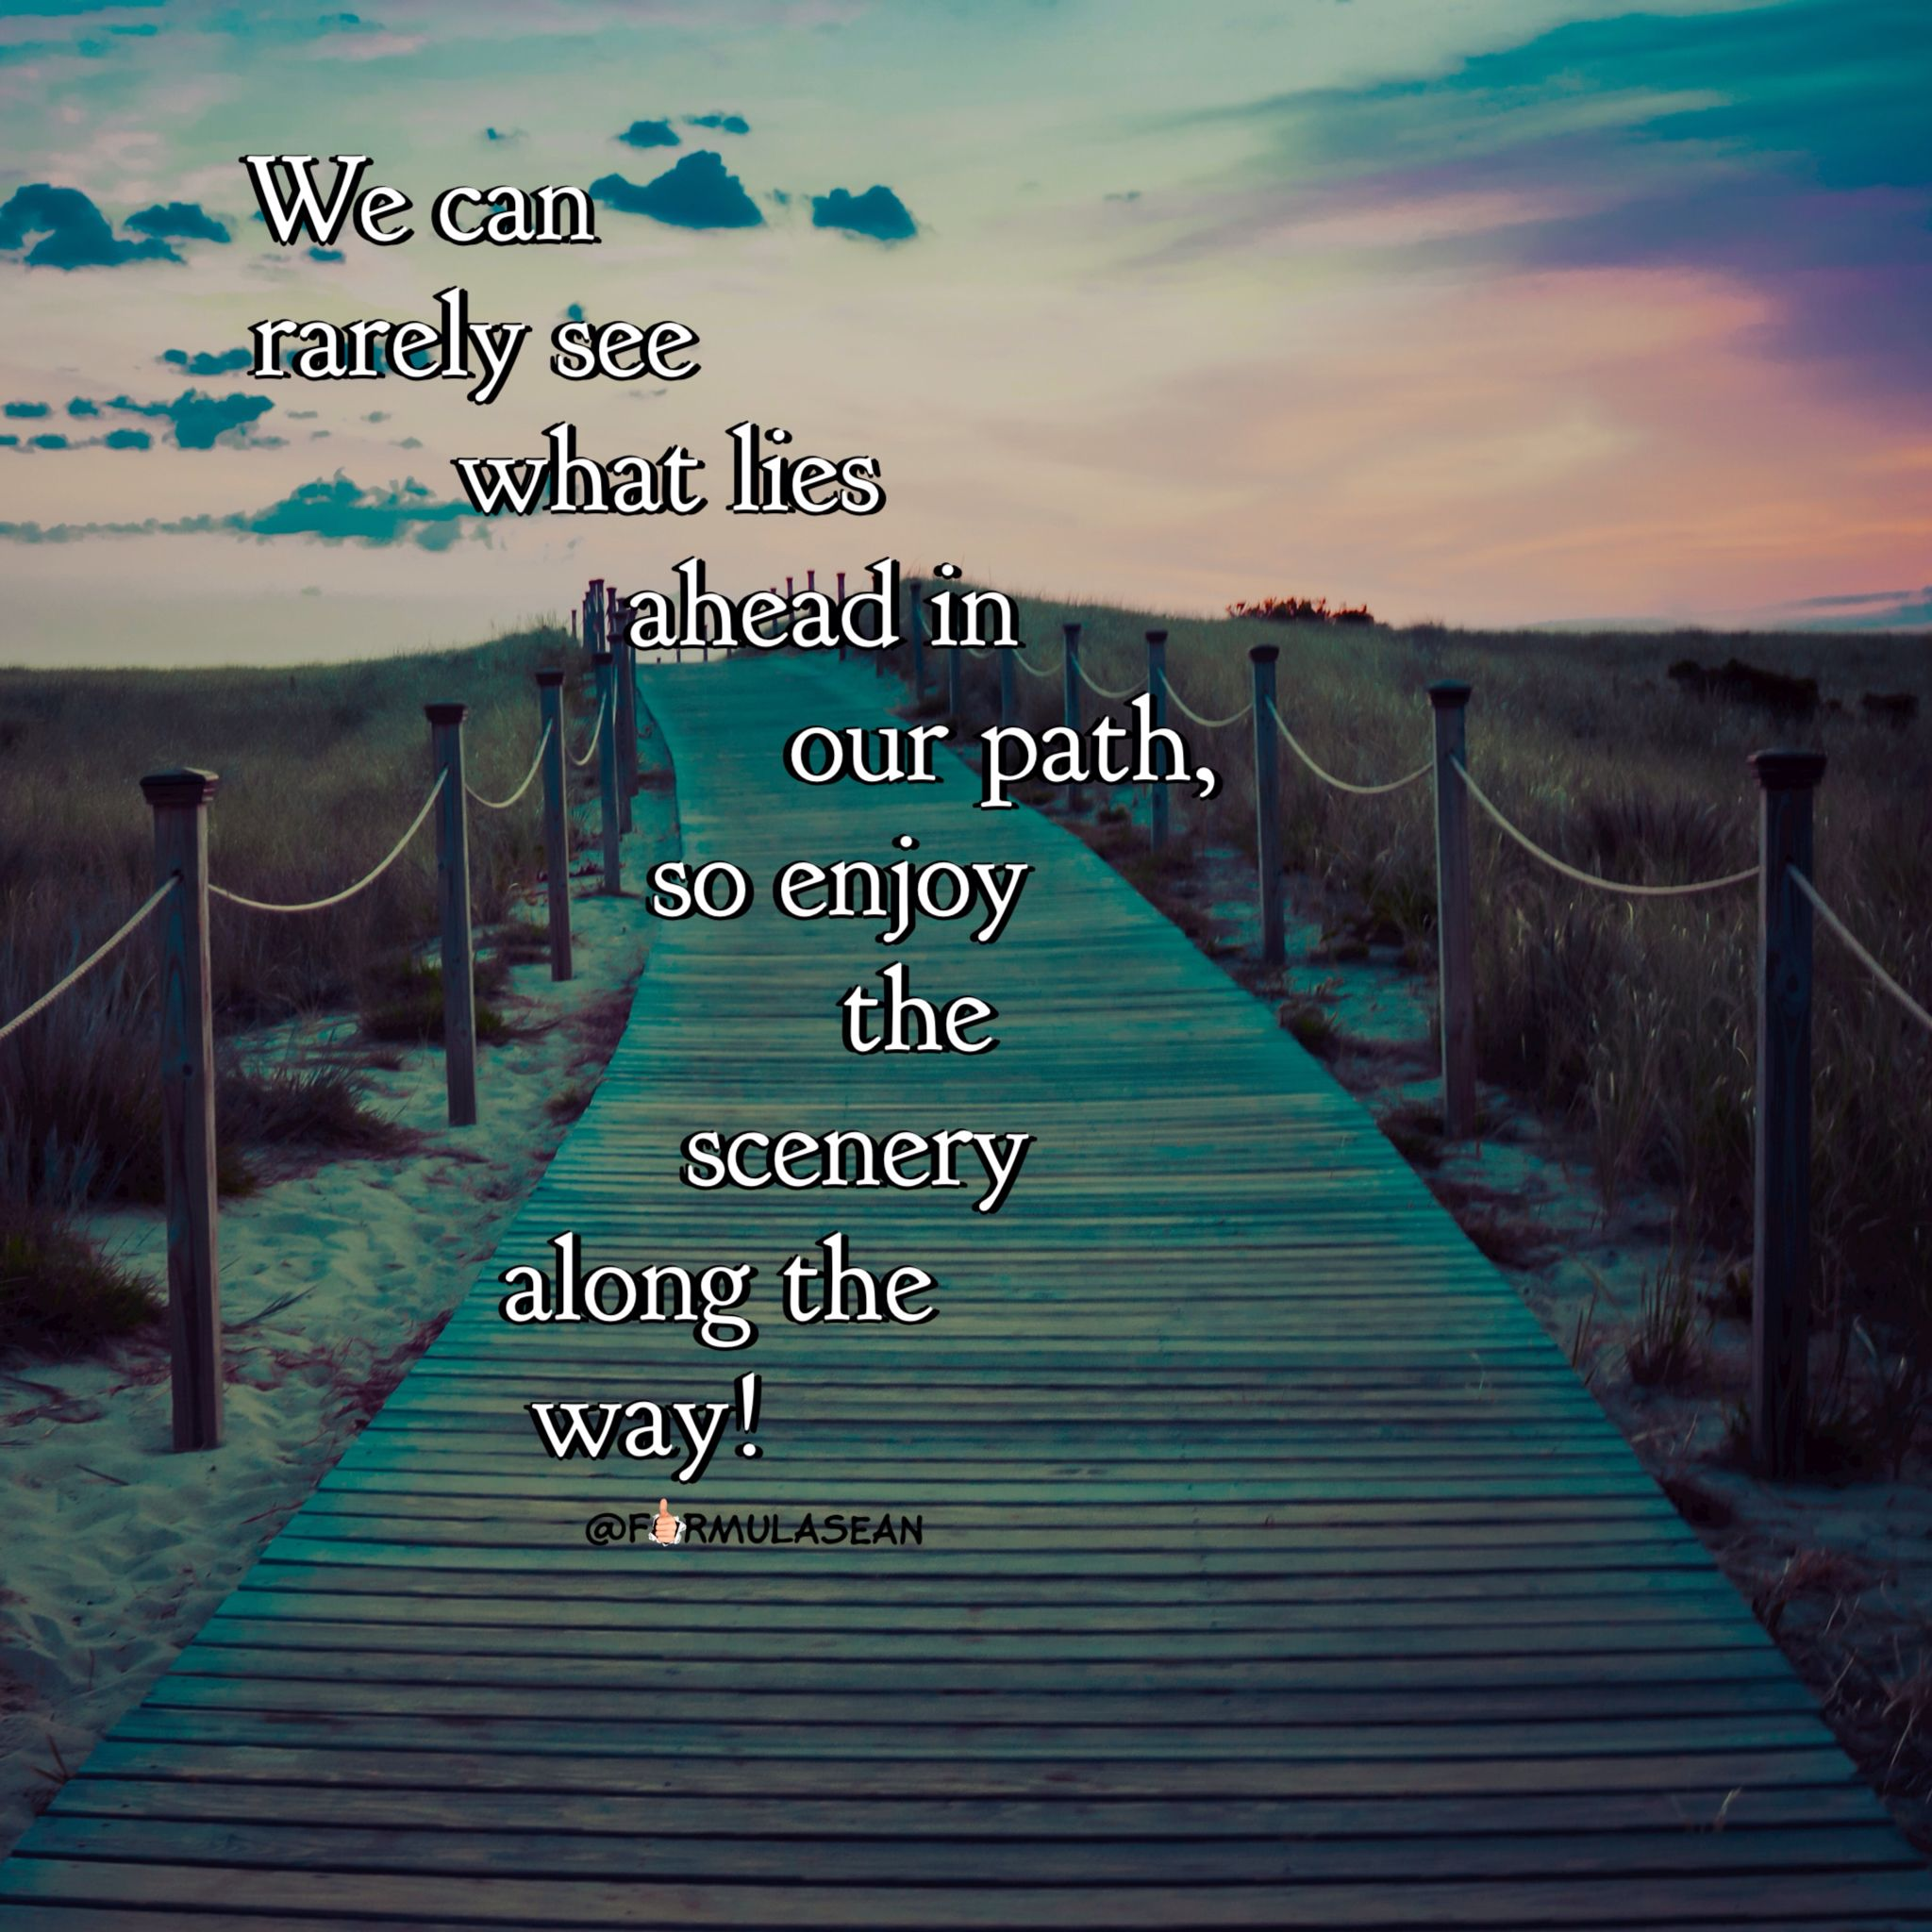 Scenic quotes daily inspirational quotations and sayings on - We Can Rarely See What Lies Ahead In Our Path So Enjoy The Scenery Along The Way Motivational Quote Inspirational Quote Open Mindset Believe